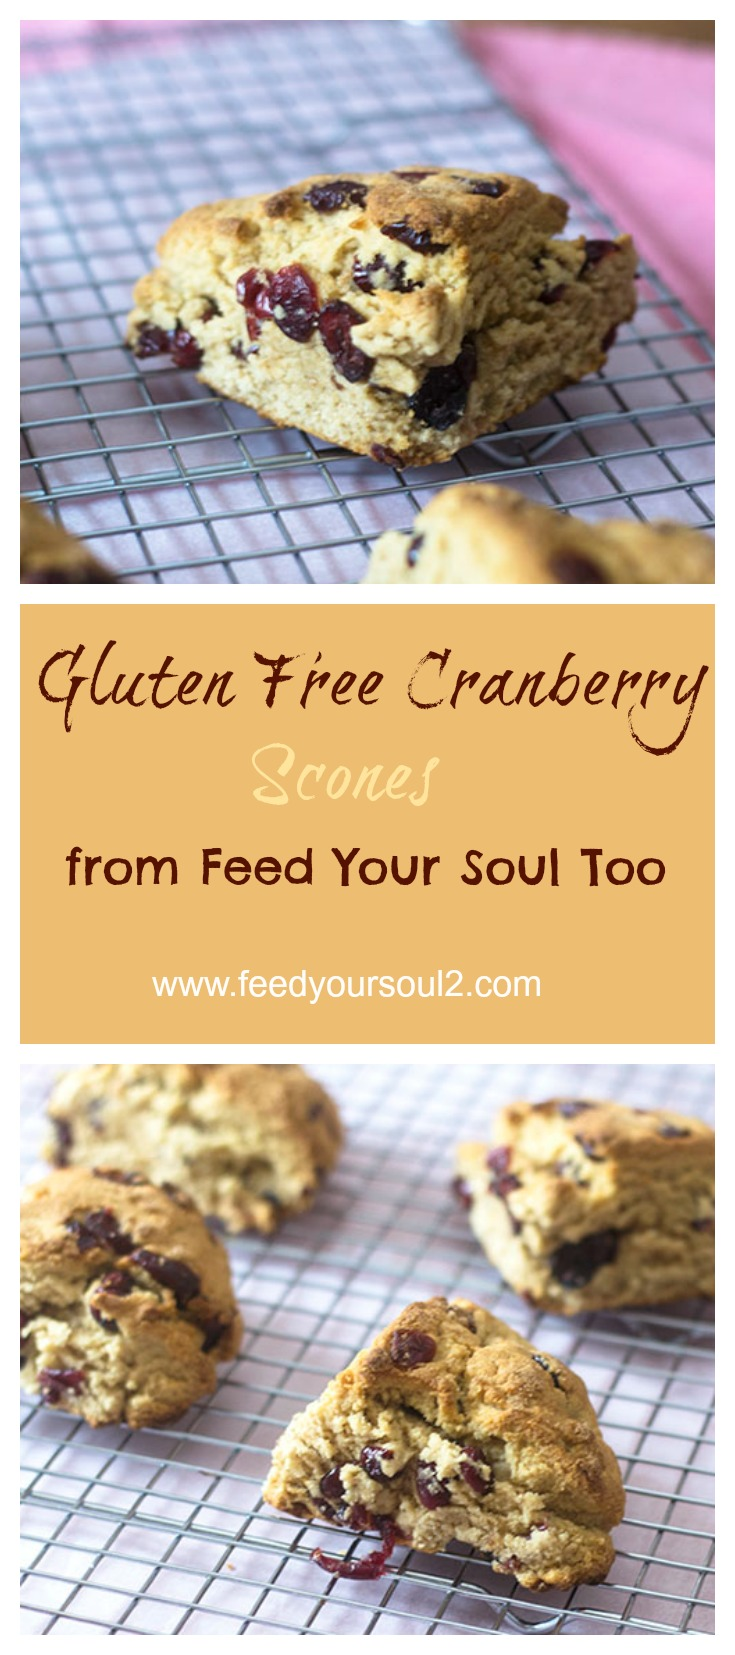 Gluten Free Vegan Cranberry Scone #vegan #glutenfree #bread | feedyoursoul2.com